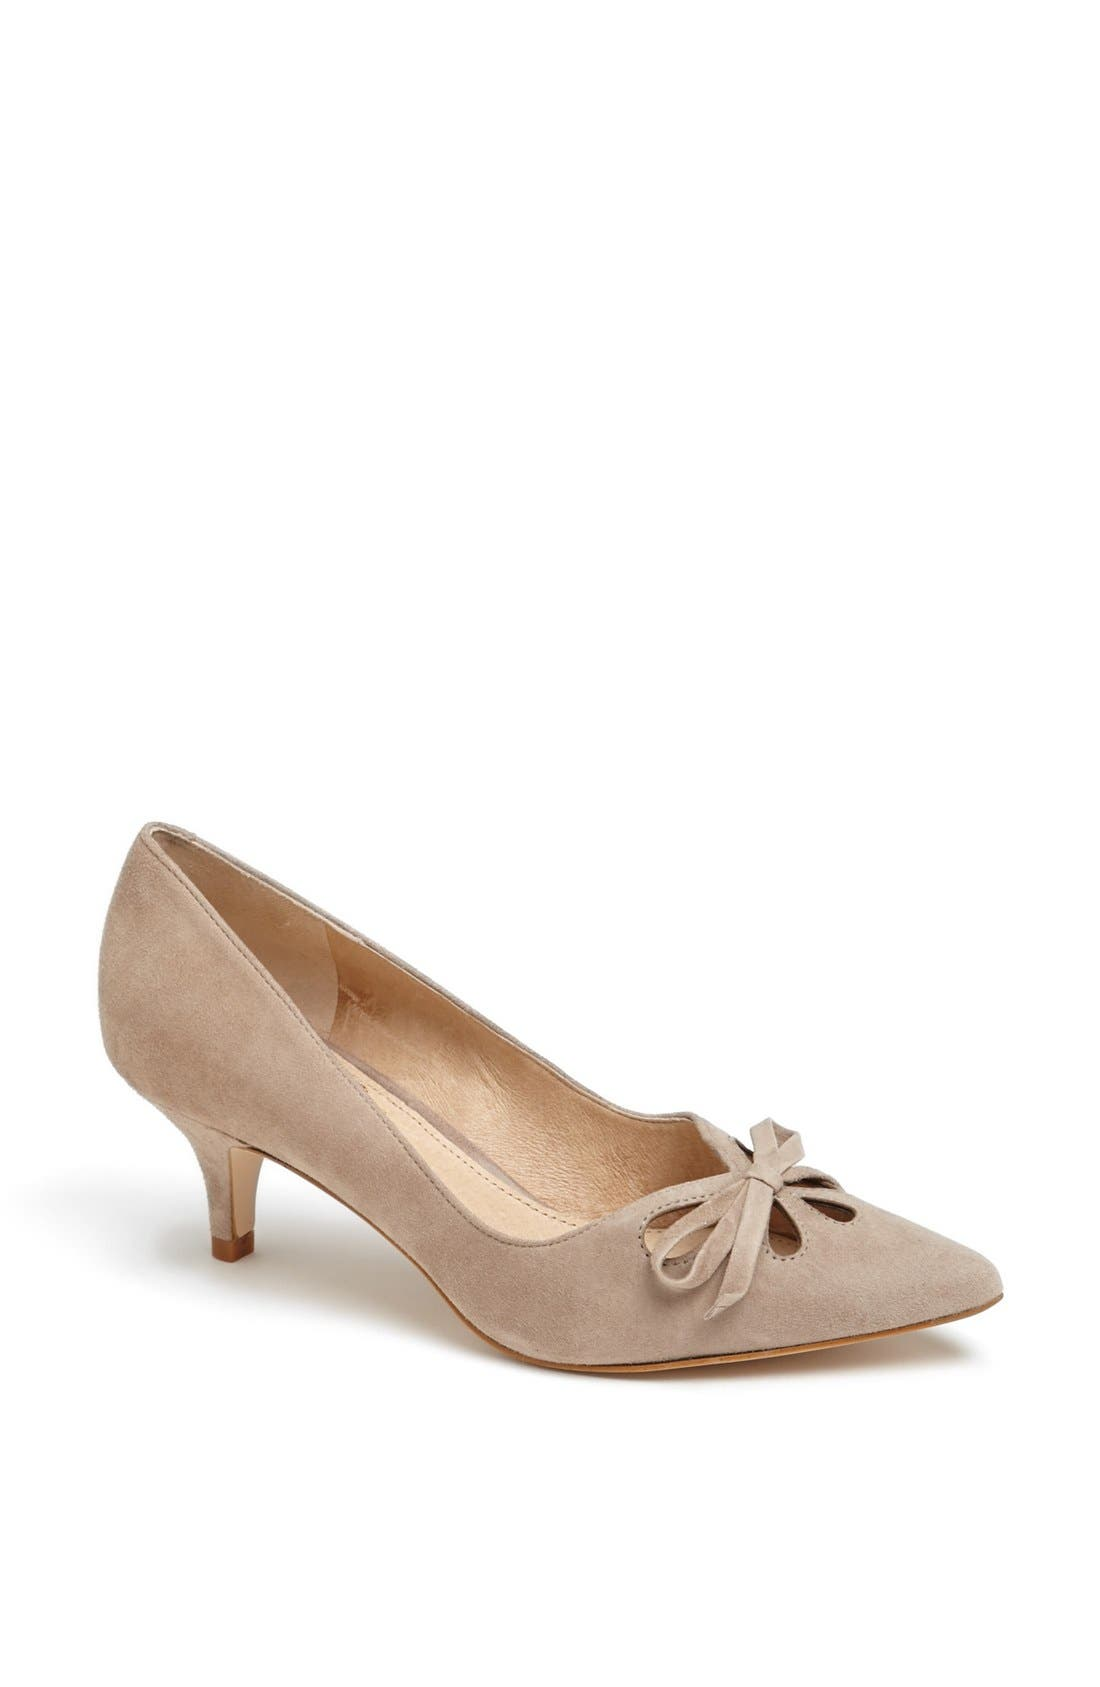 Main Image - Joan & David 'Gardner' Pump